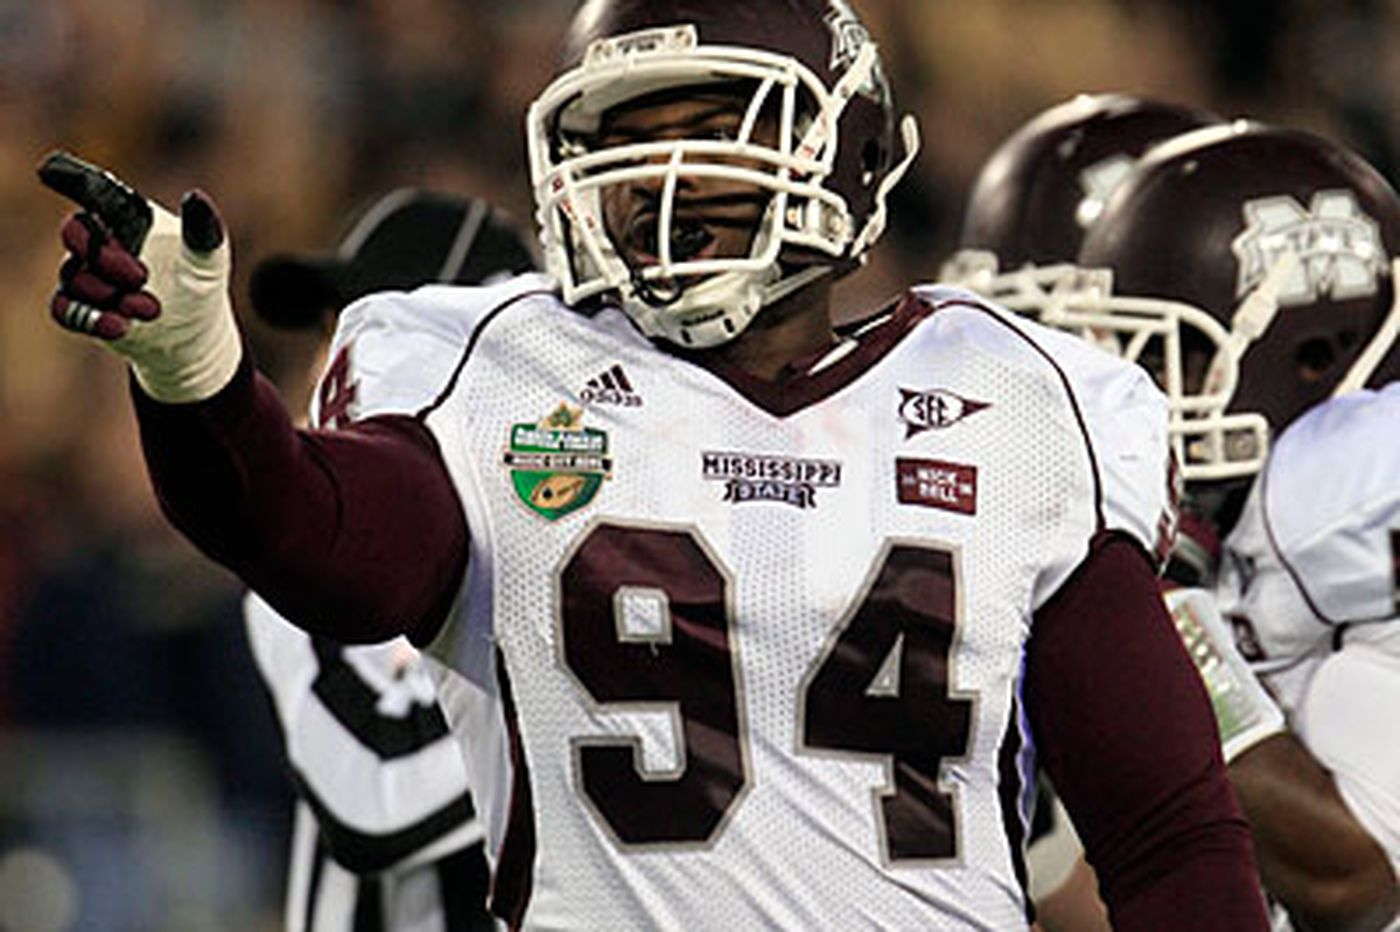 Top defensive line prospects in the 2012 NFL Draft